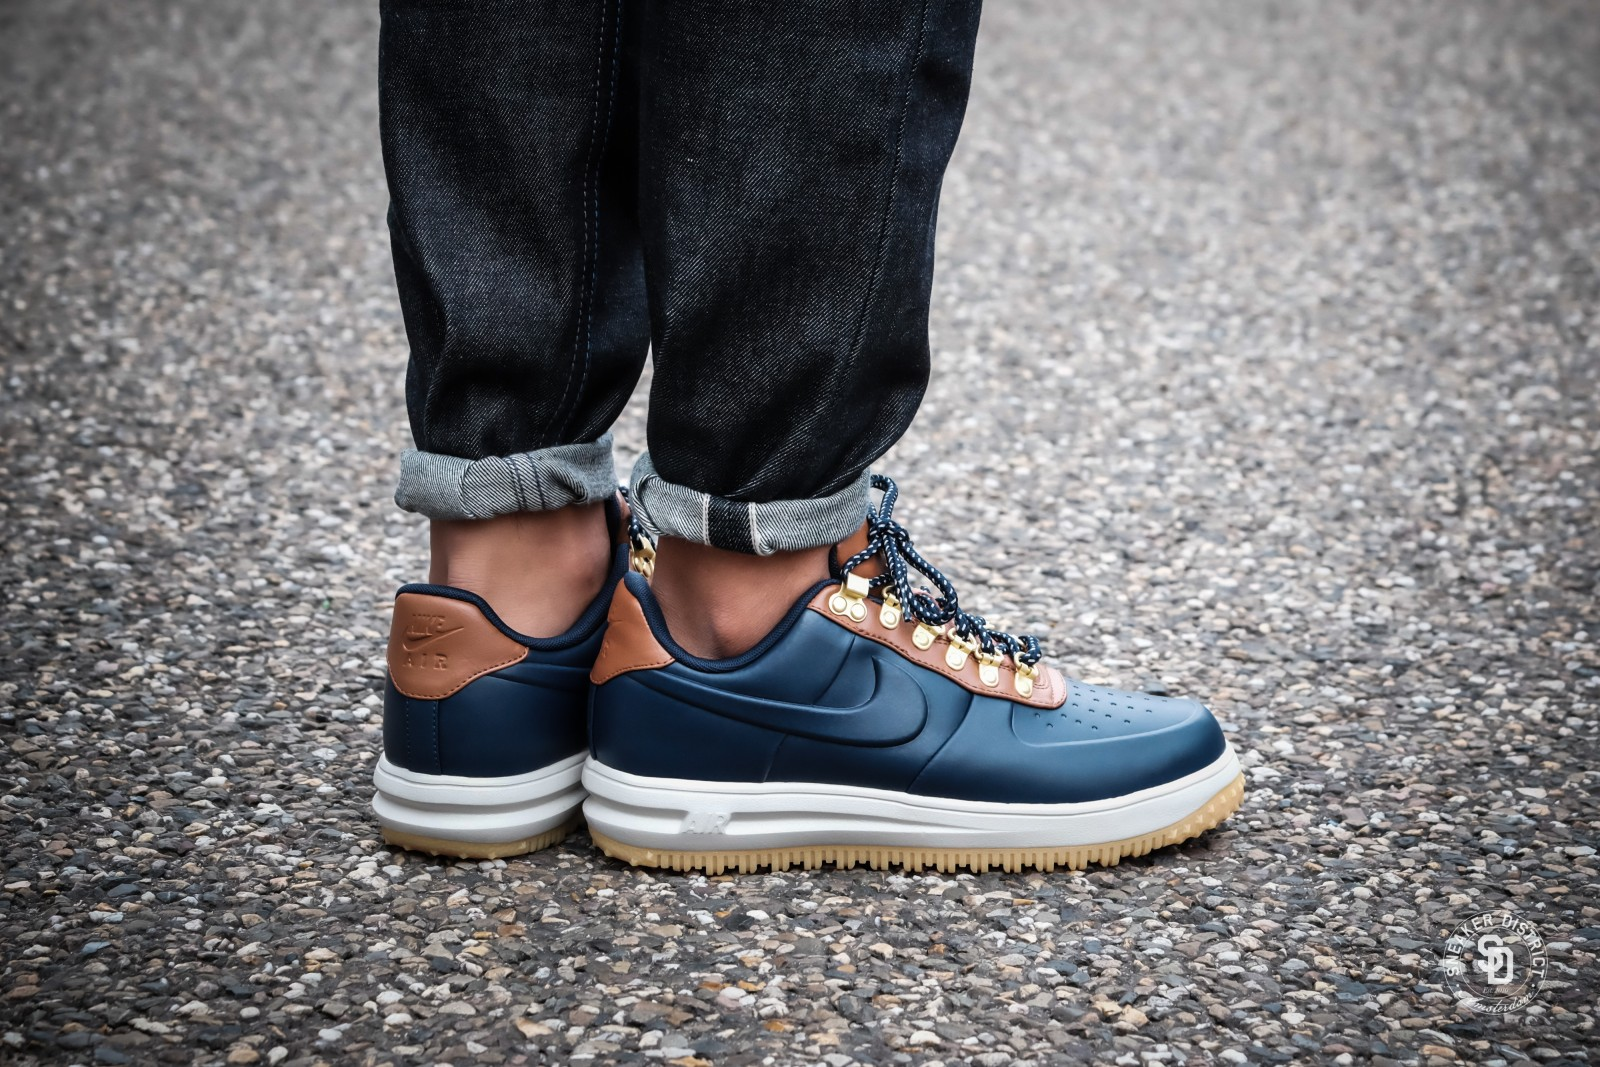 Nike Lunar Force 1 Low Duckboot Obsidian/Saddle Brown